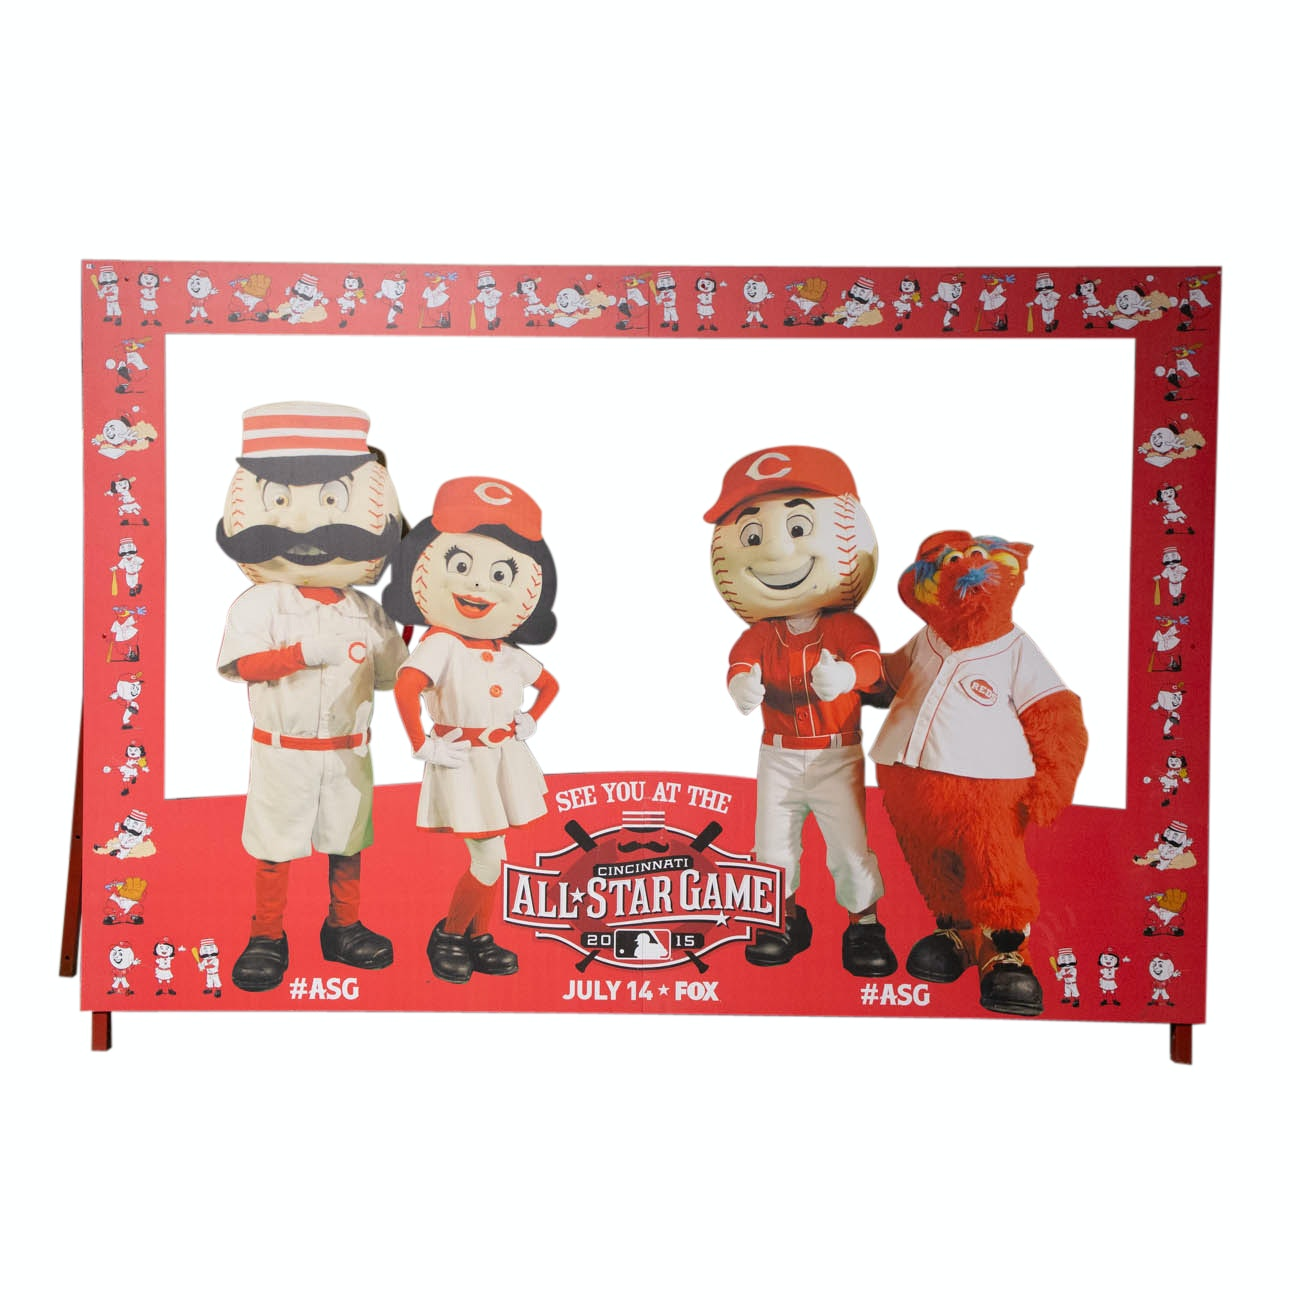 Stand In Photo Frame From The 2015 All-Star Game Great American Ball Park COA